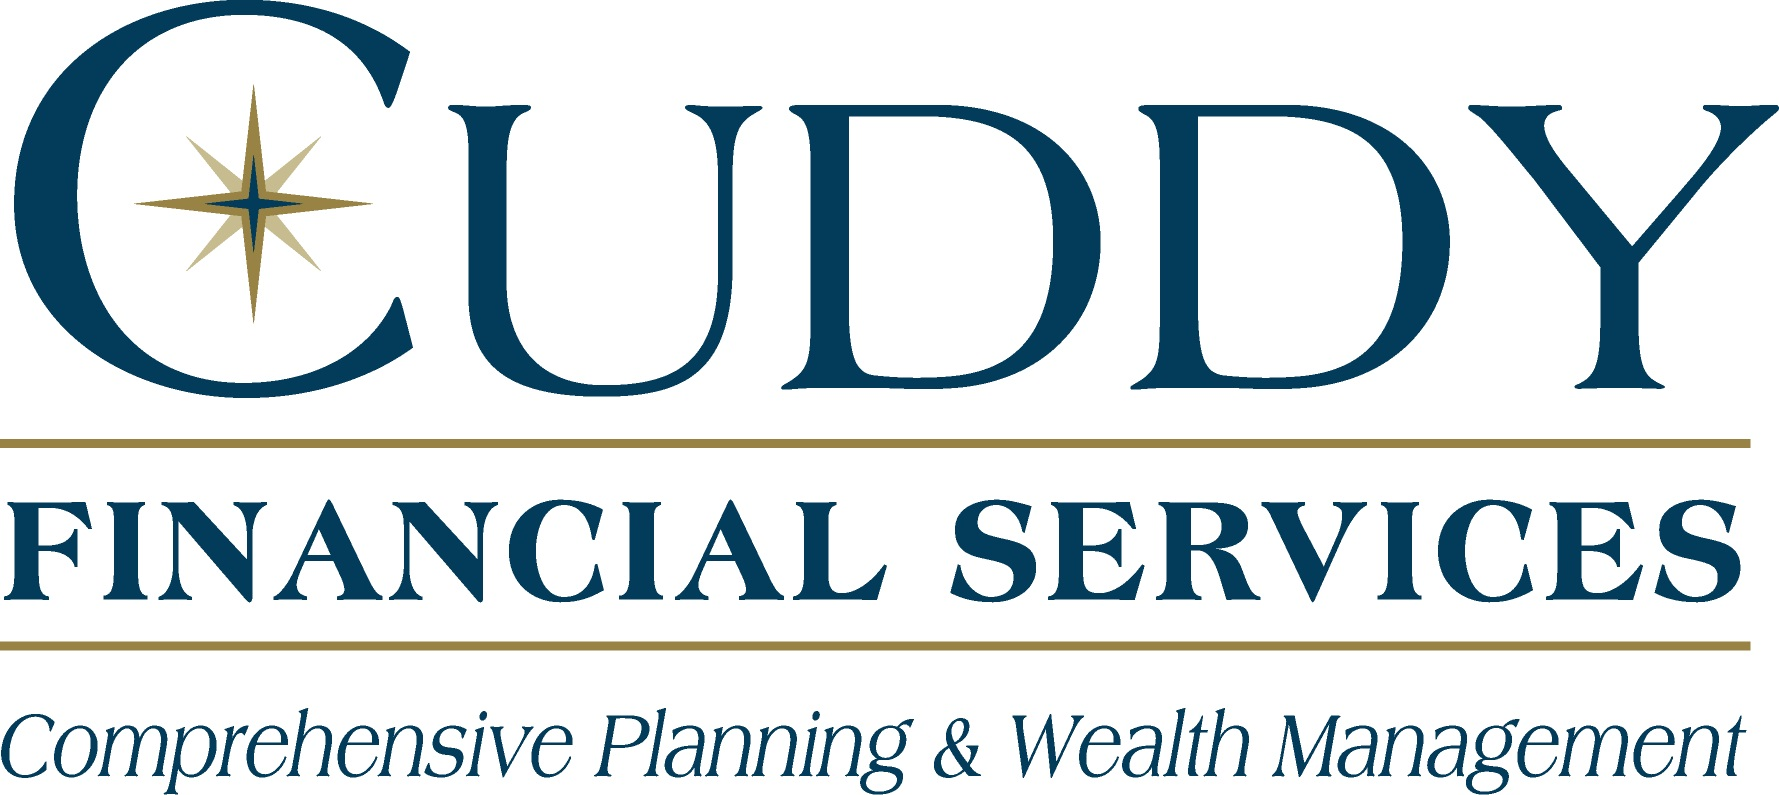 Cuddy Financial Services.jpg